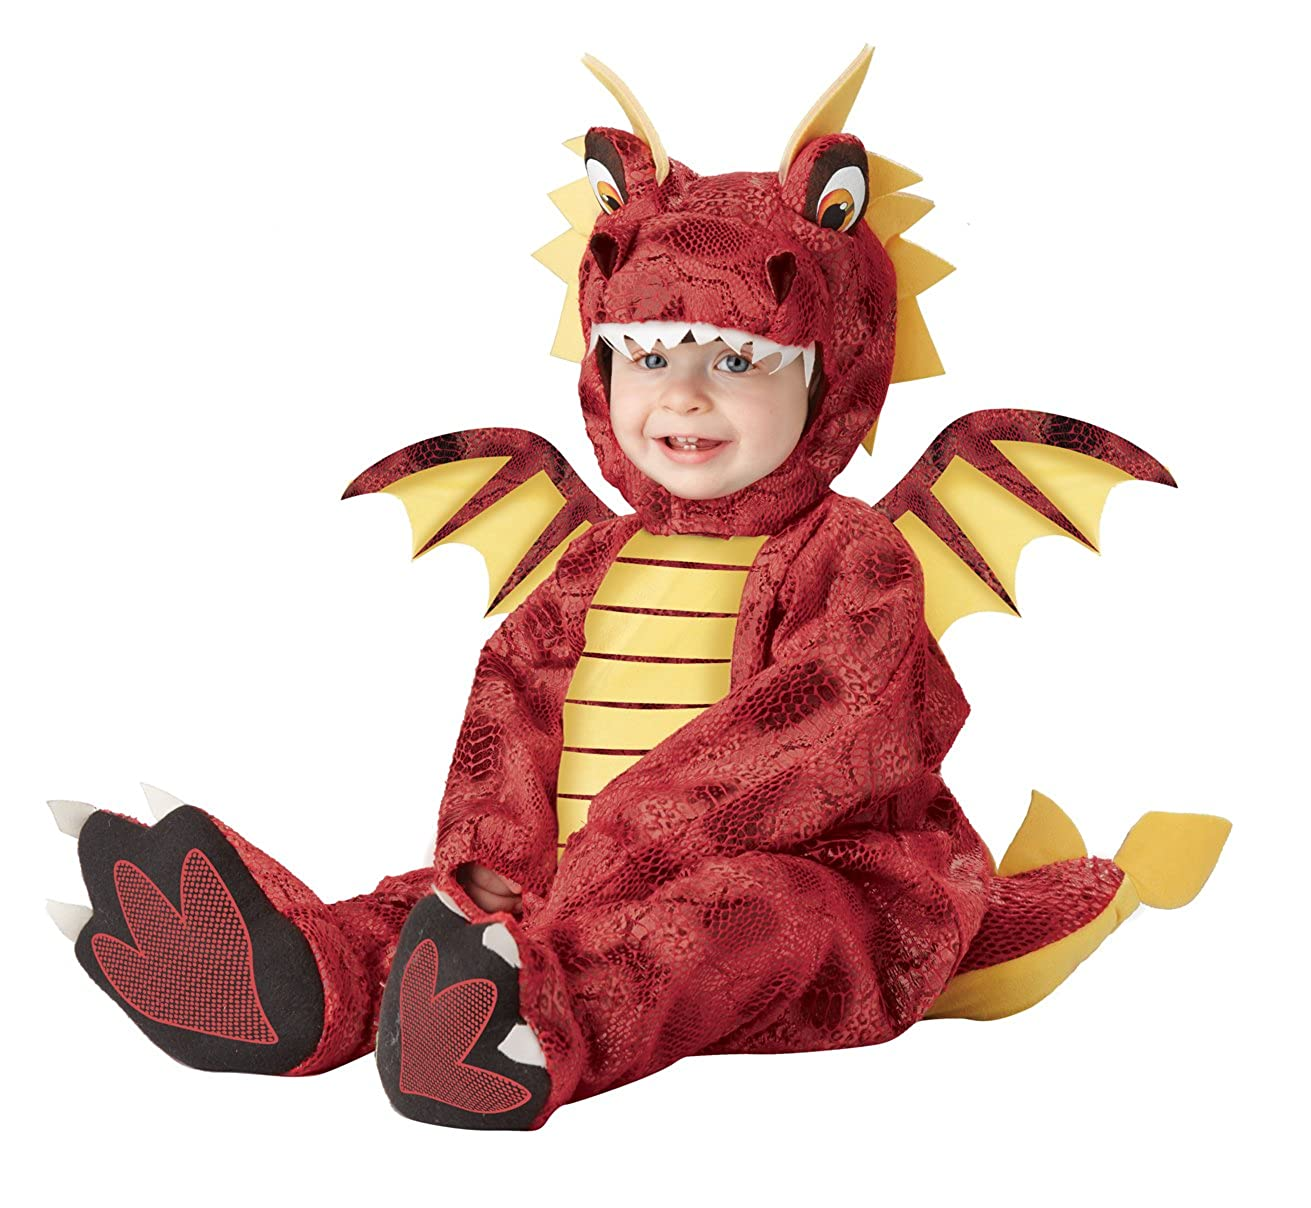 California Costumes Adorable Dragon Infant 10019BBY